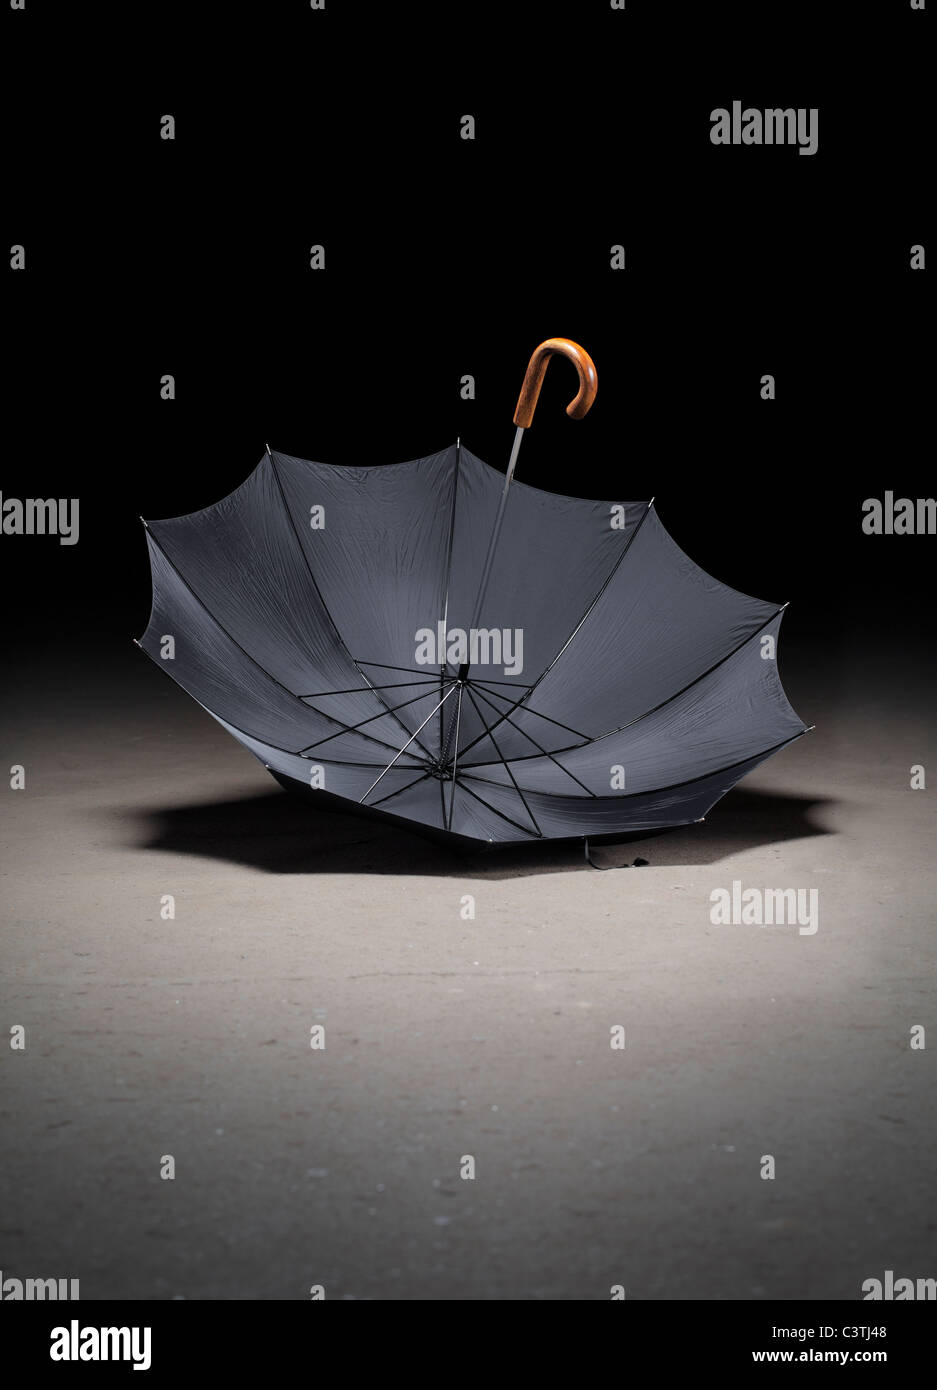 Old black umbrella upside down on dirty concrete floor - Stock Image